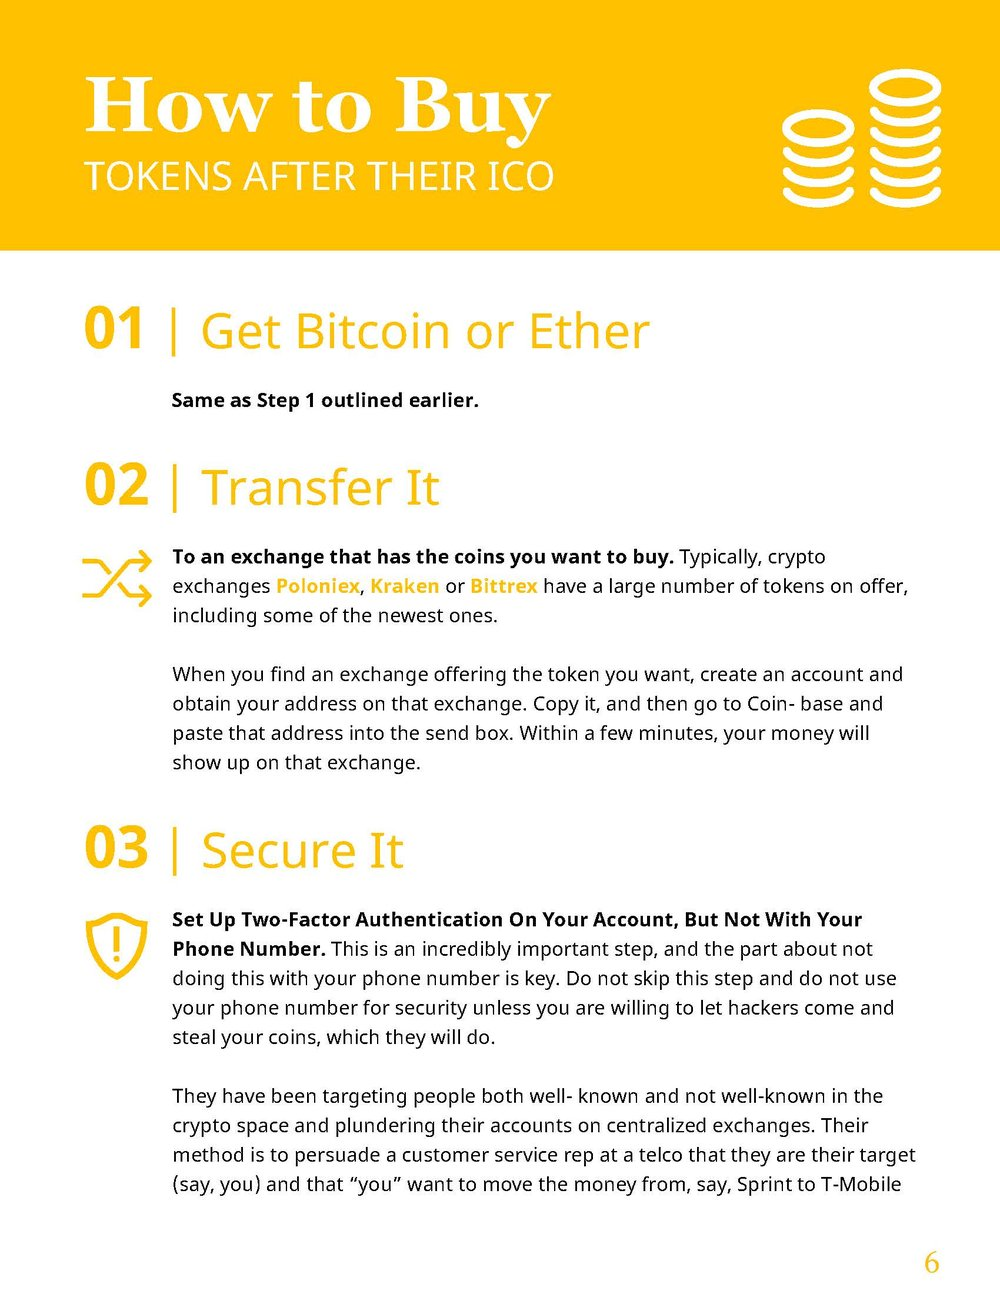 forbes-crypto-newsletter-r04_Page_06.jpg